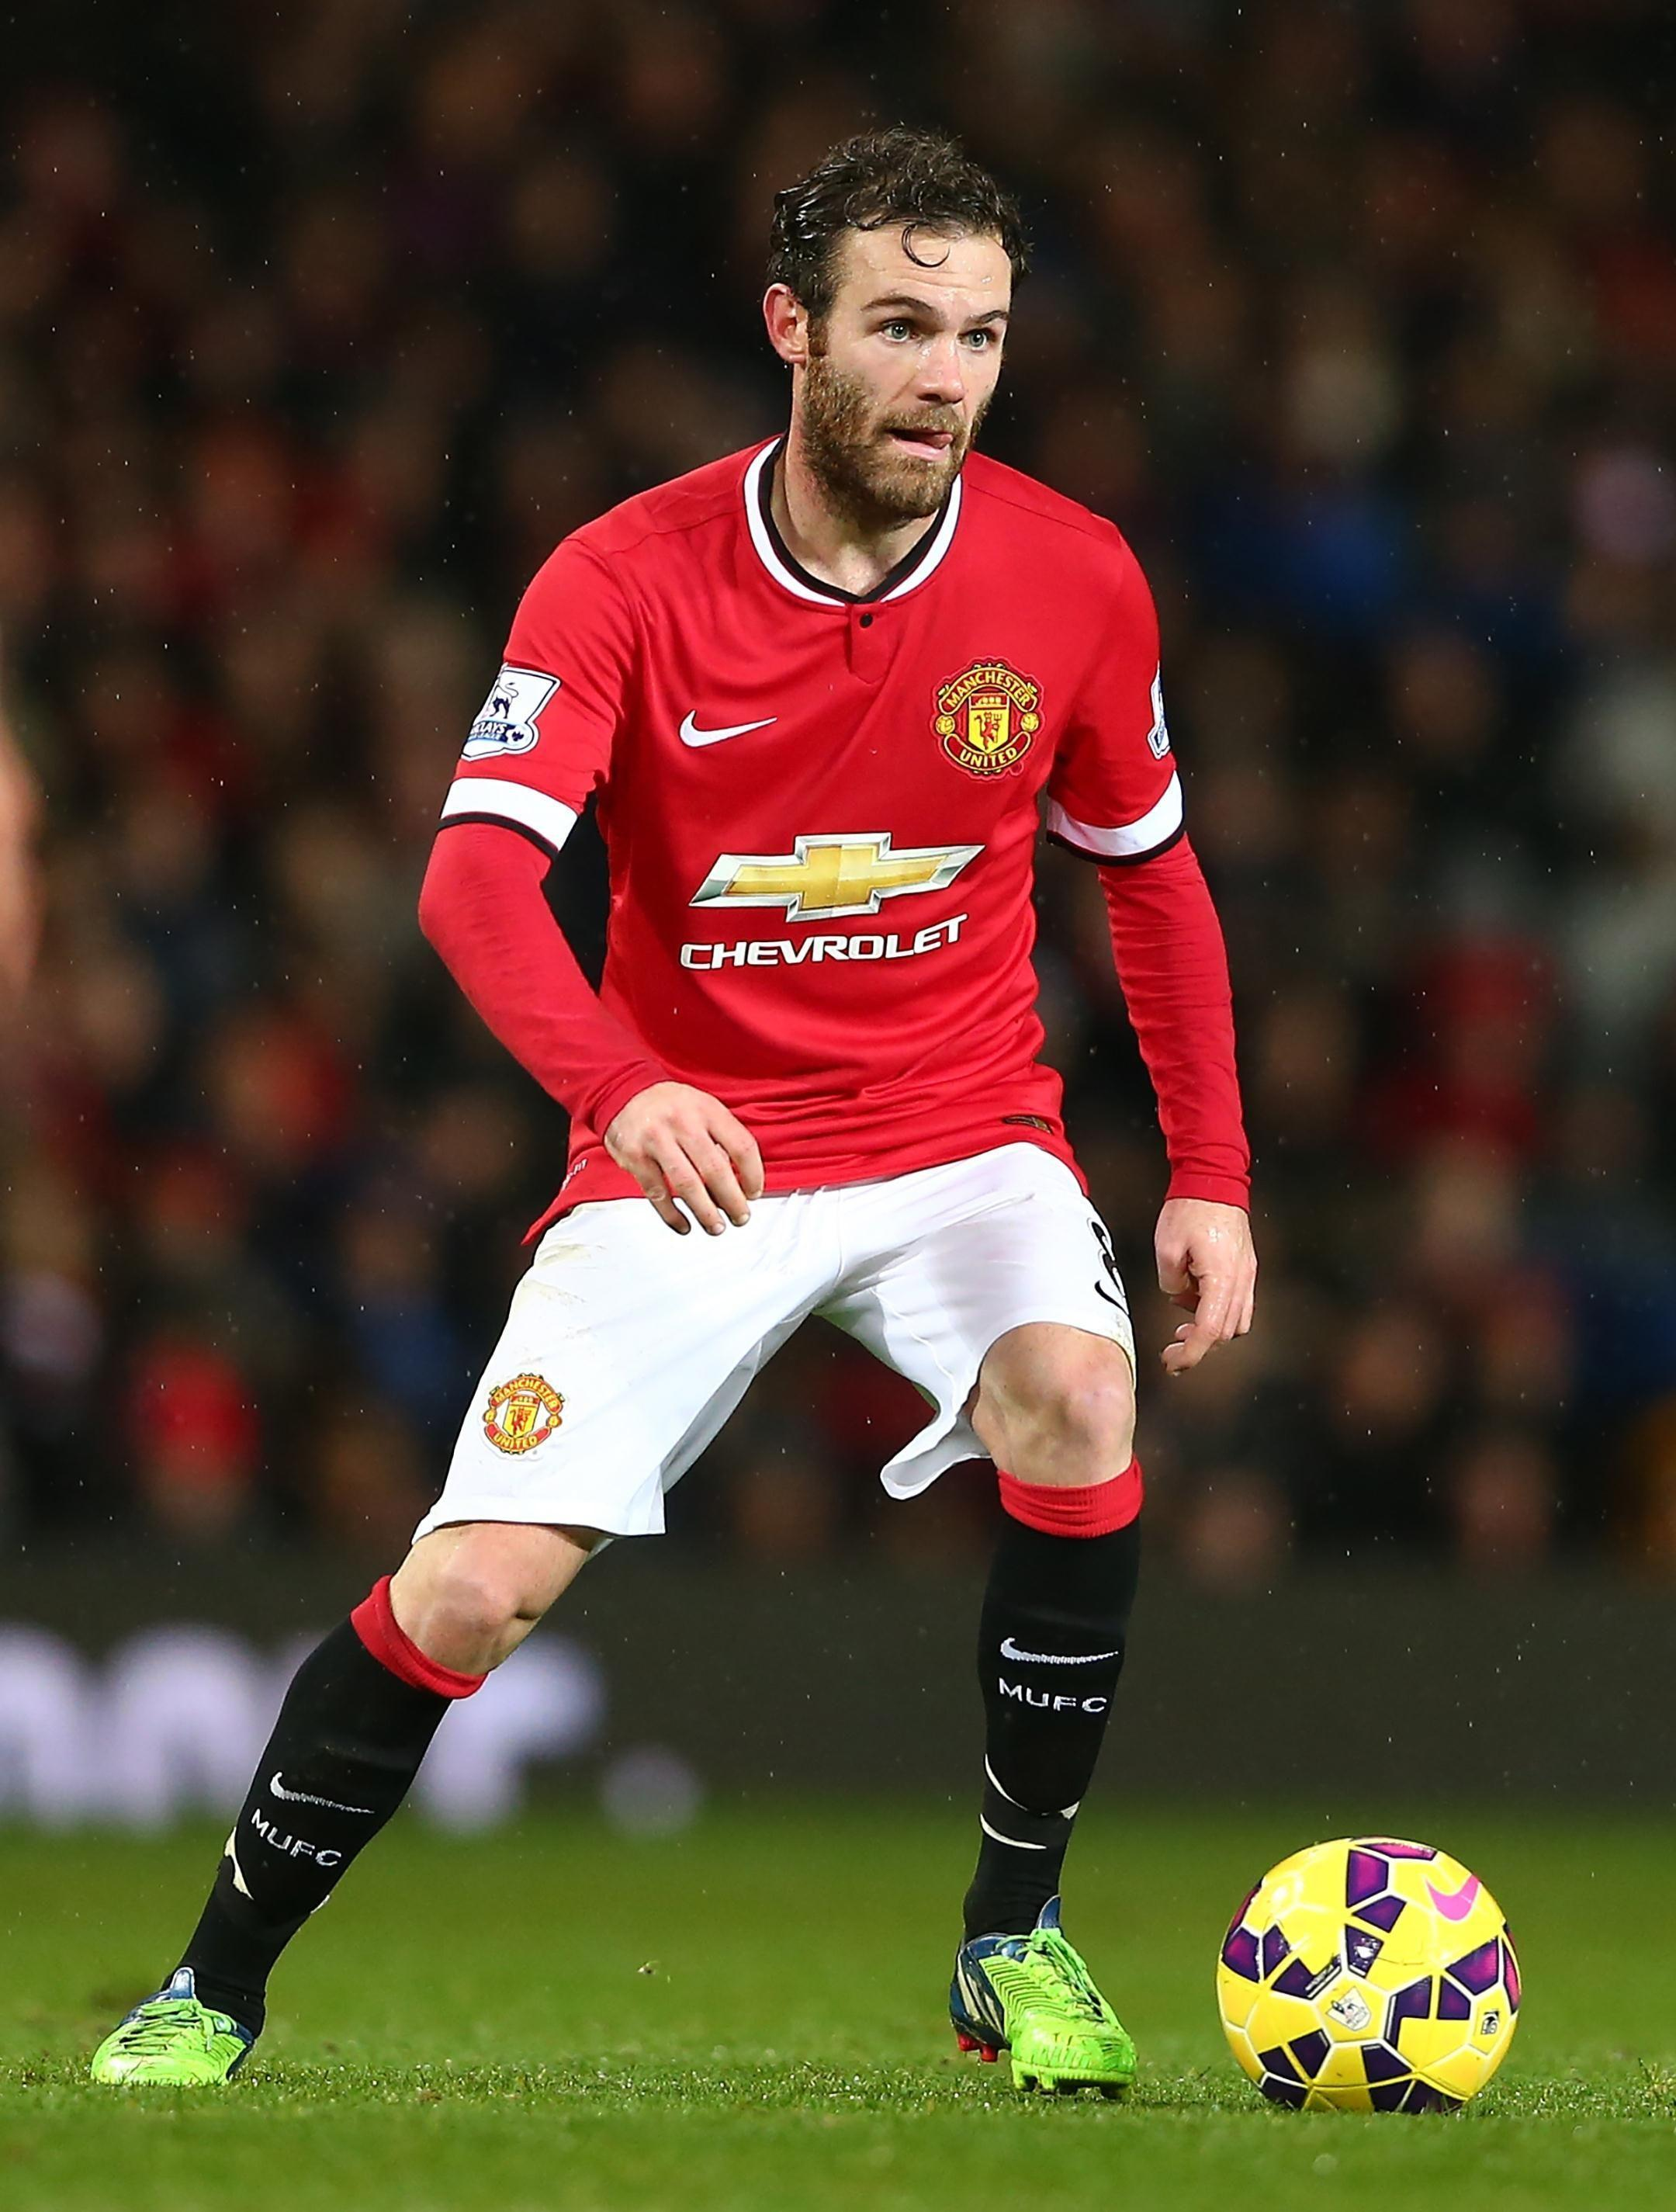 Juan Mata says it's a privilege to play alongside Wayne Rooney ...